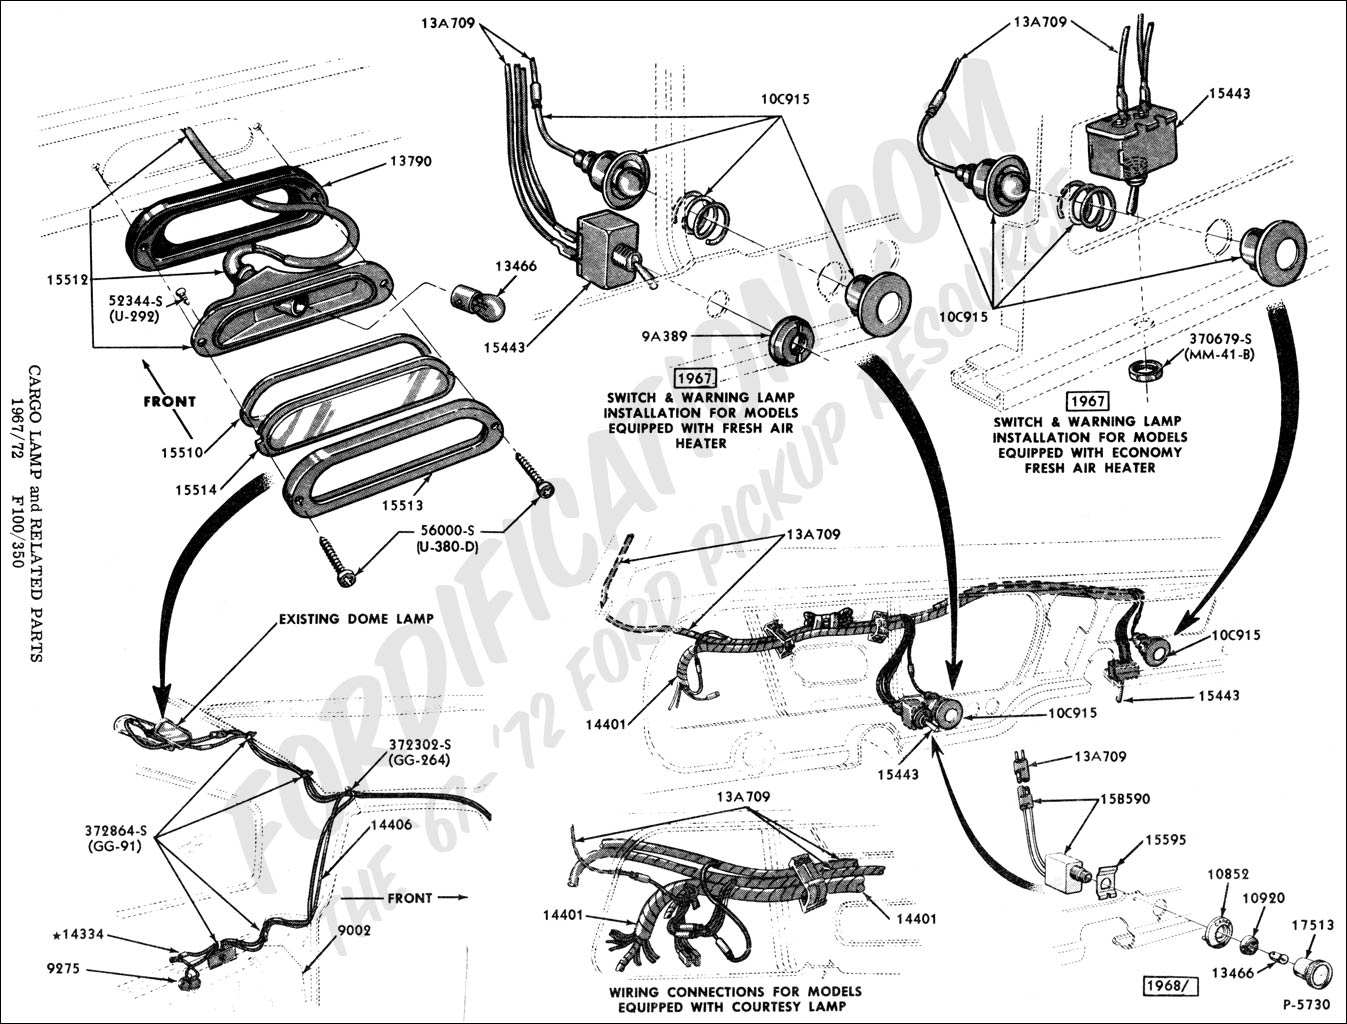 1981 Ford F250 Wiring Diagram Smart Diagrams 75 Fuse Box Truck Technical Drawings And Schematics Section I Rh Fordification Com 1999 F 250 1978